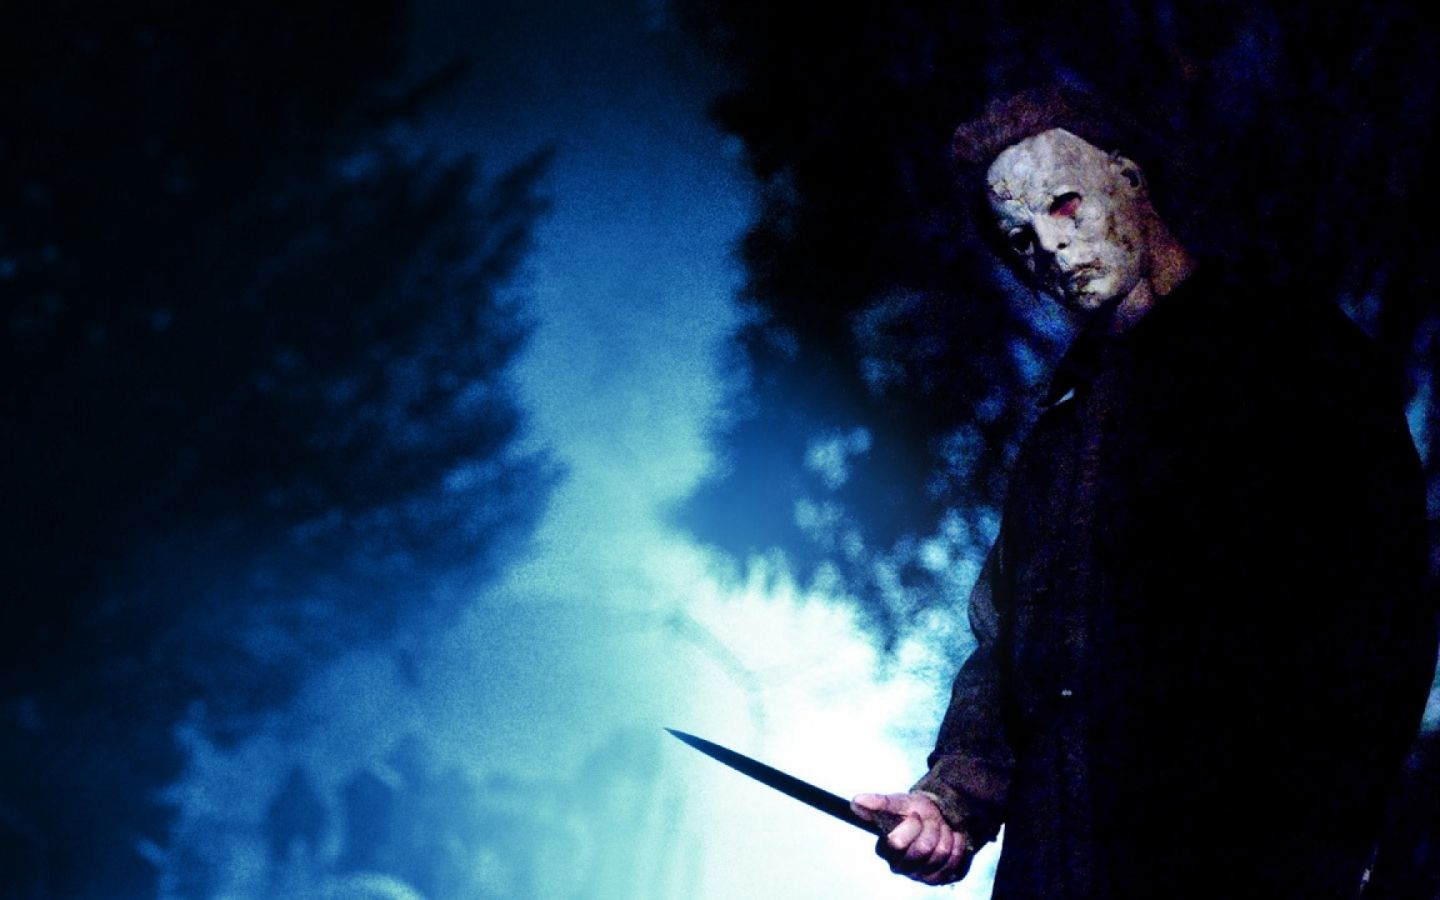 Michael Myers Wallpapers Background Michael Myers Halloween Live Wallpaper Horror Music